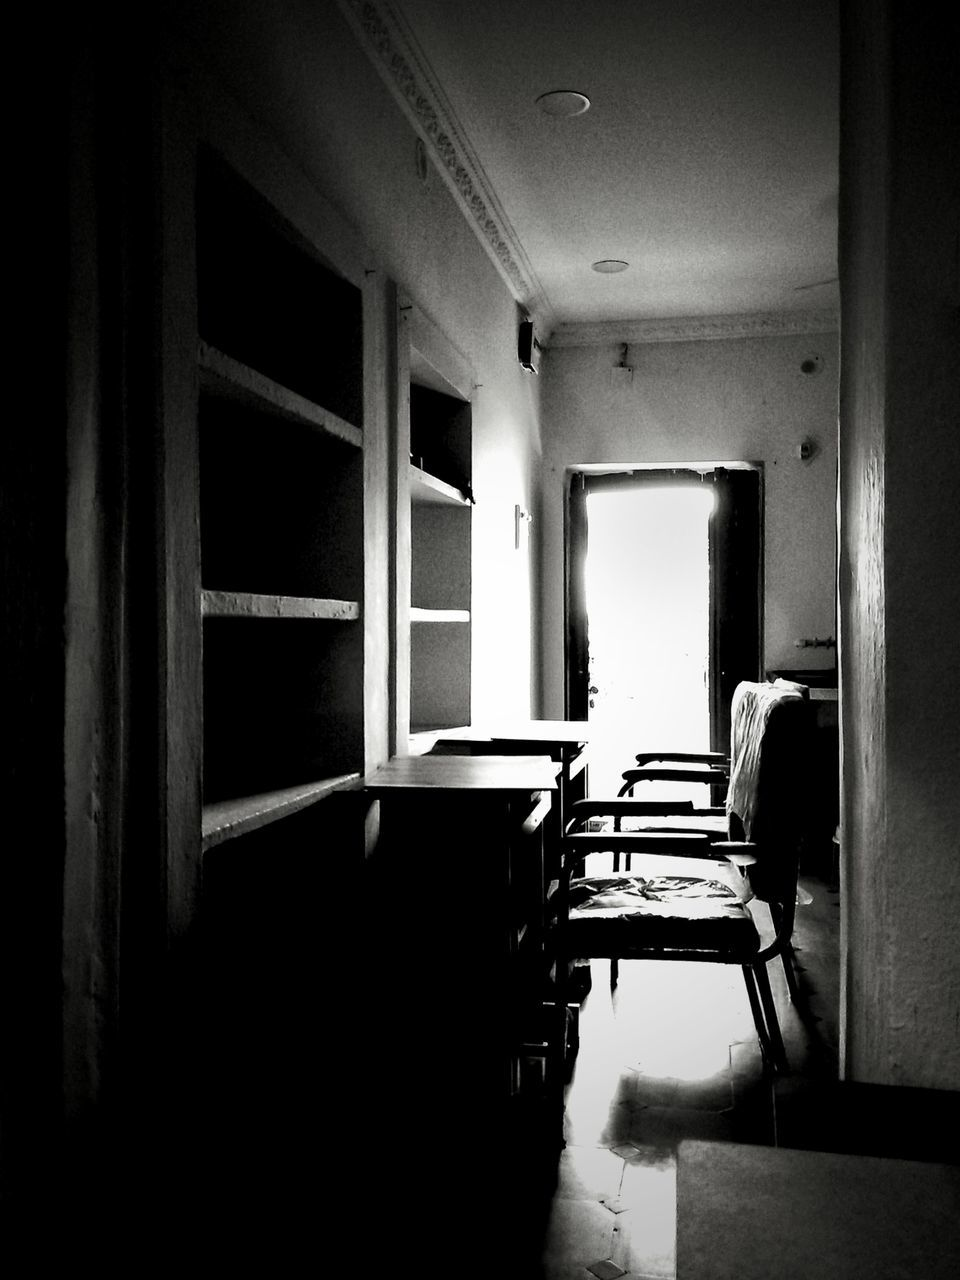 indoors, chair, empty, absence, window, furniture, no people, home interior, open door, architecture, day